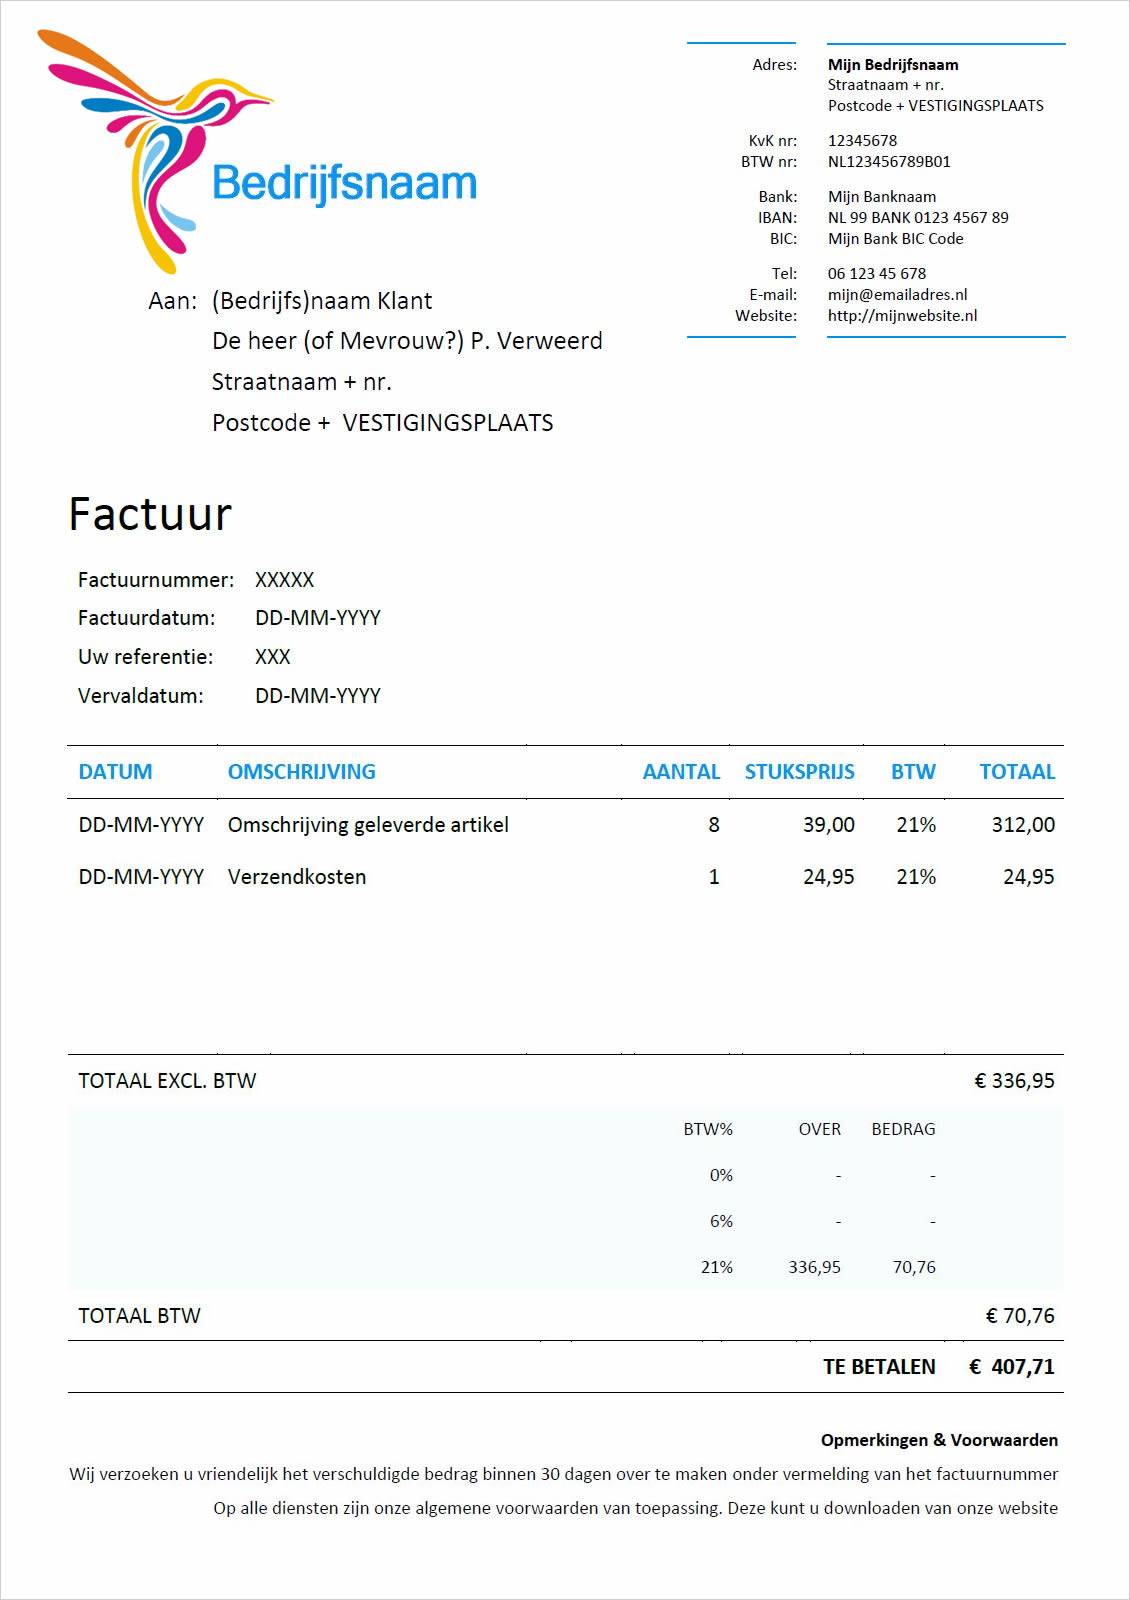 pdf factuur Index of /wp content/uploads/2016/02